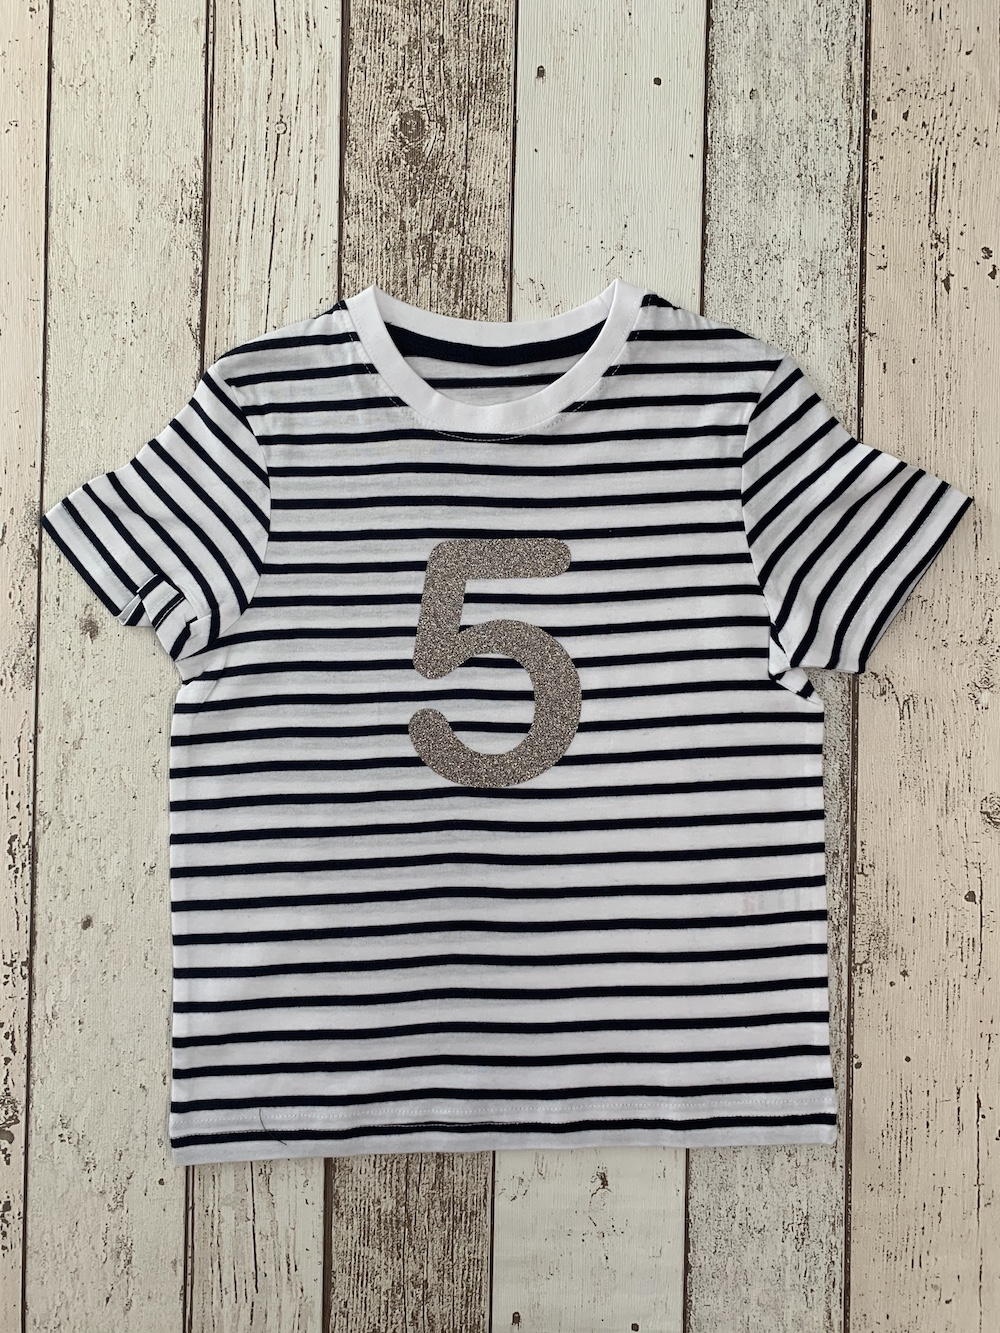 Number 5 Stripe Birthday T-shirt